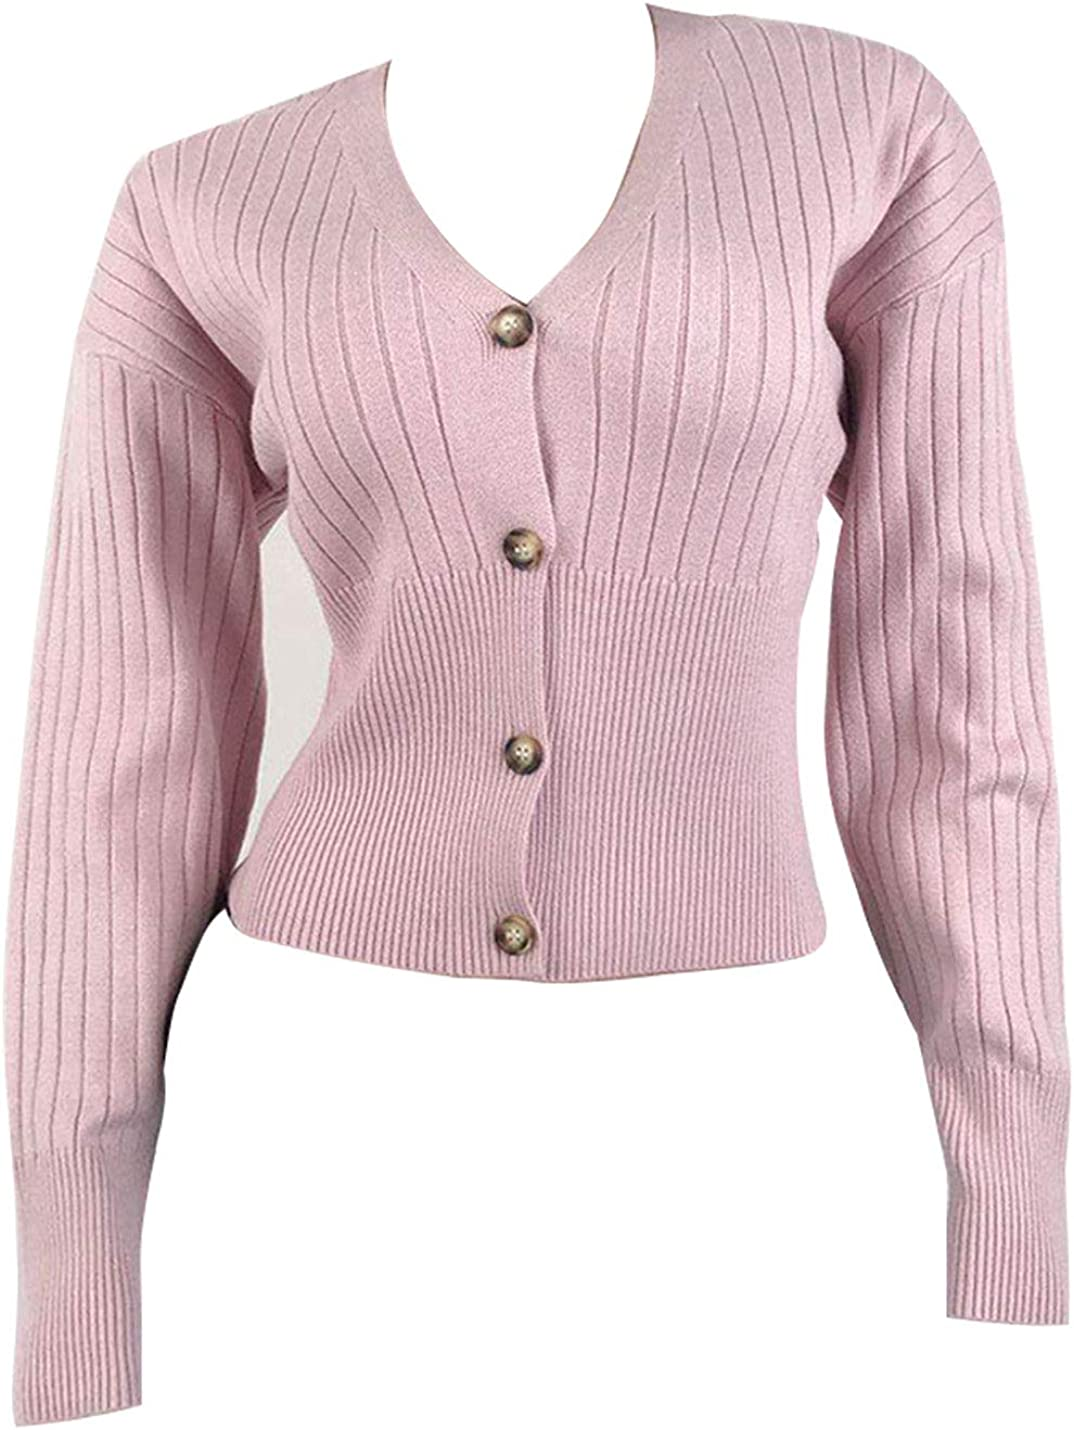 Uaneo Womens Ribbed Knit V-Neck Long Sleeve Button Down Solid Cardigan Sweaters(Pink-XS)